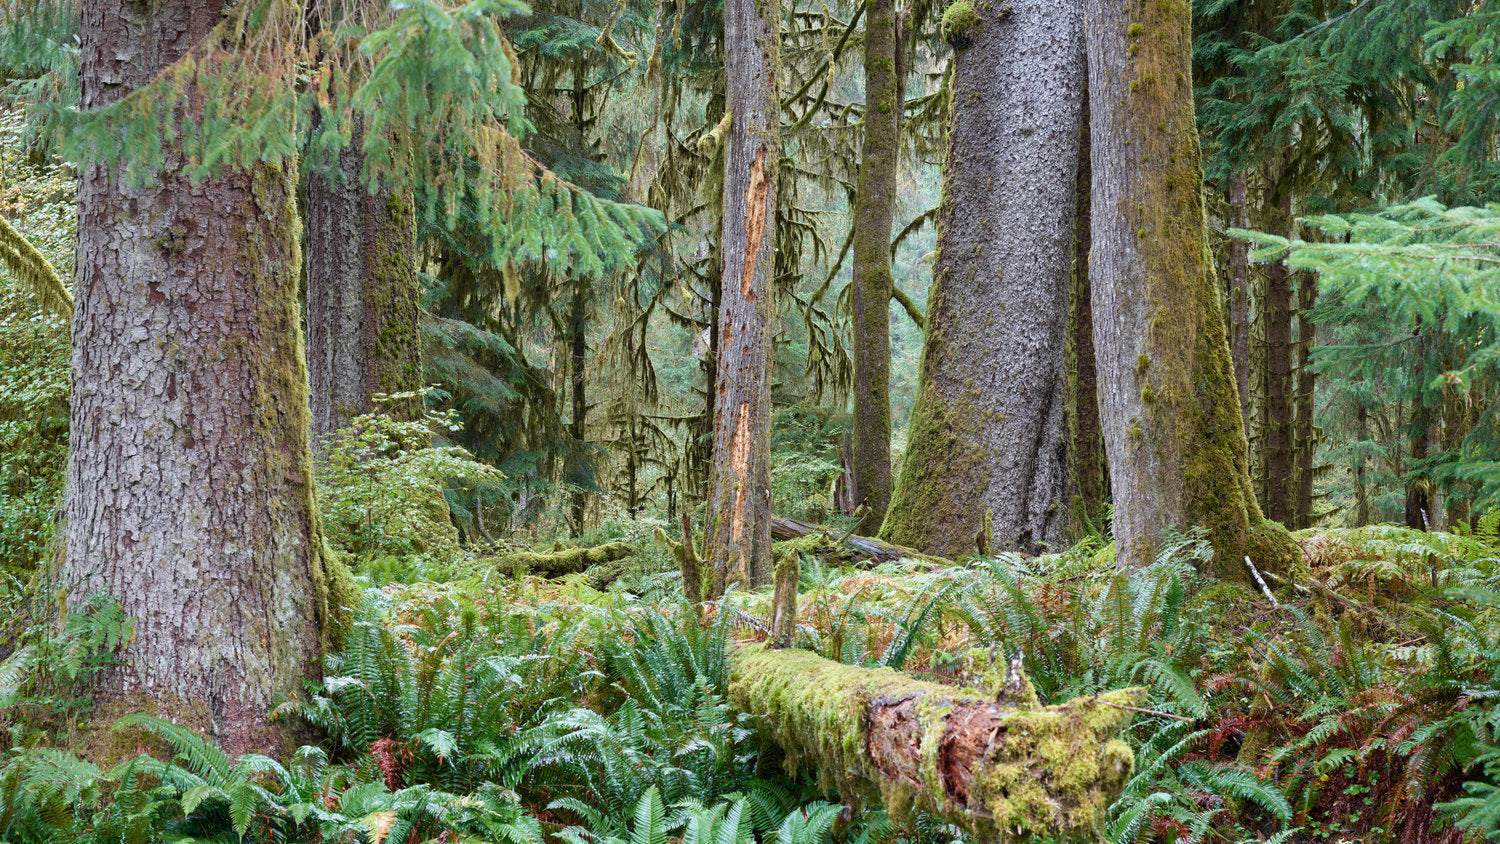 Hoh Rainforest, Washington State